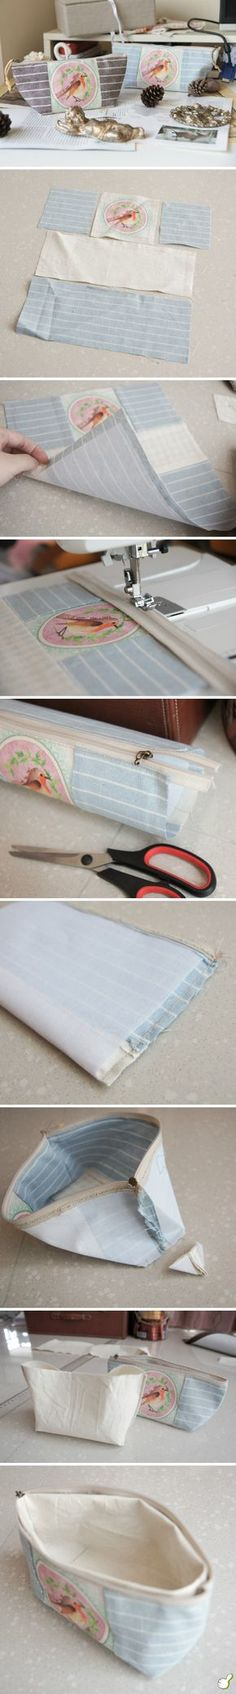 Small zip bag tutorial...looks pretty simple....good for leftover small remnants!